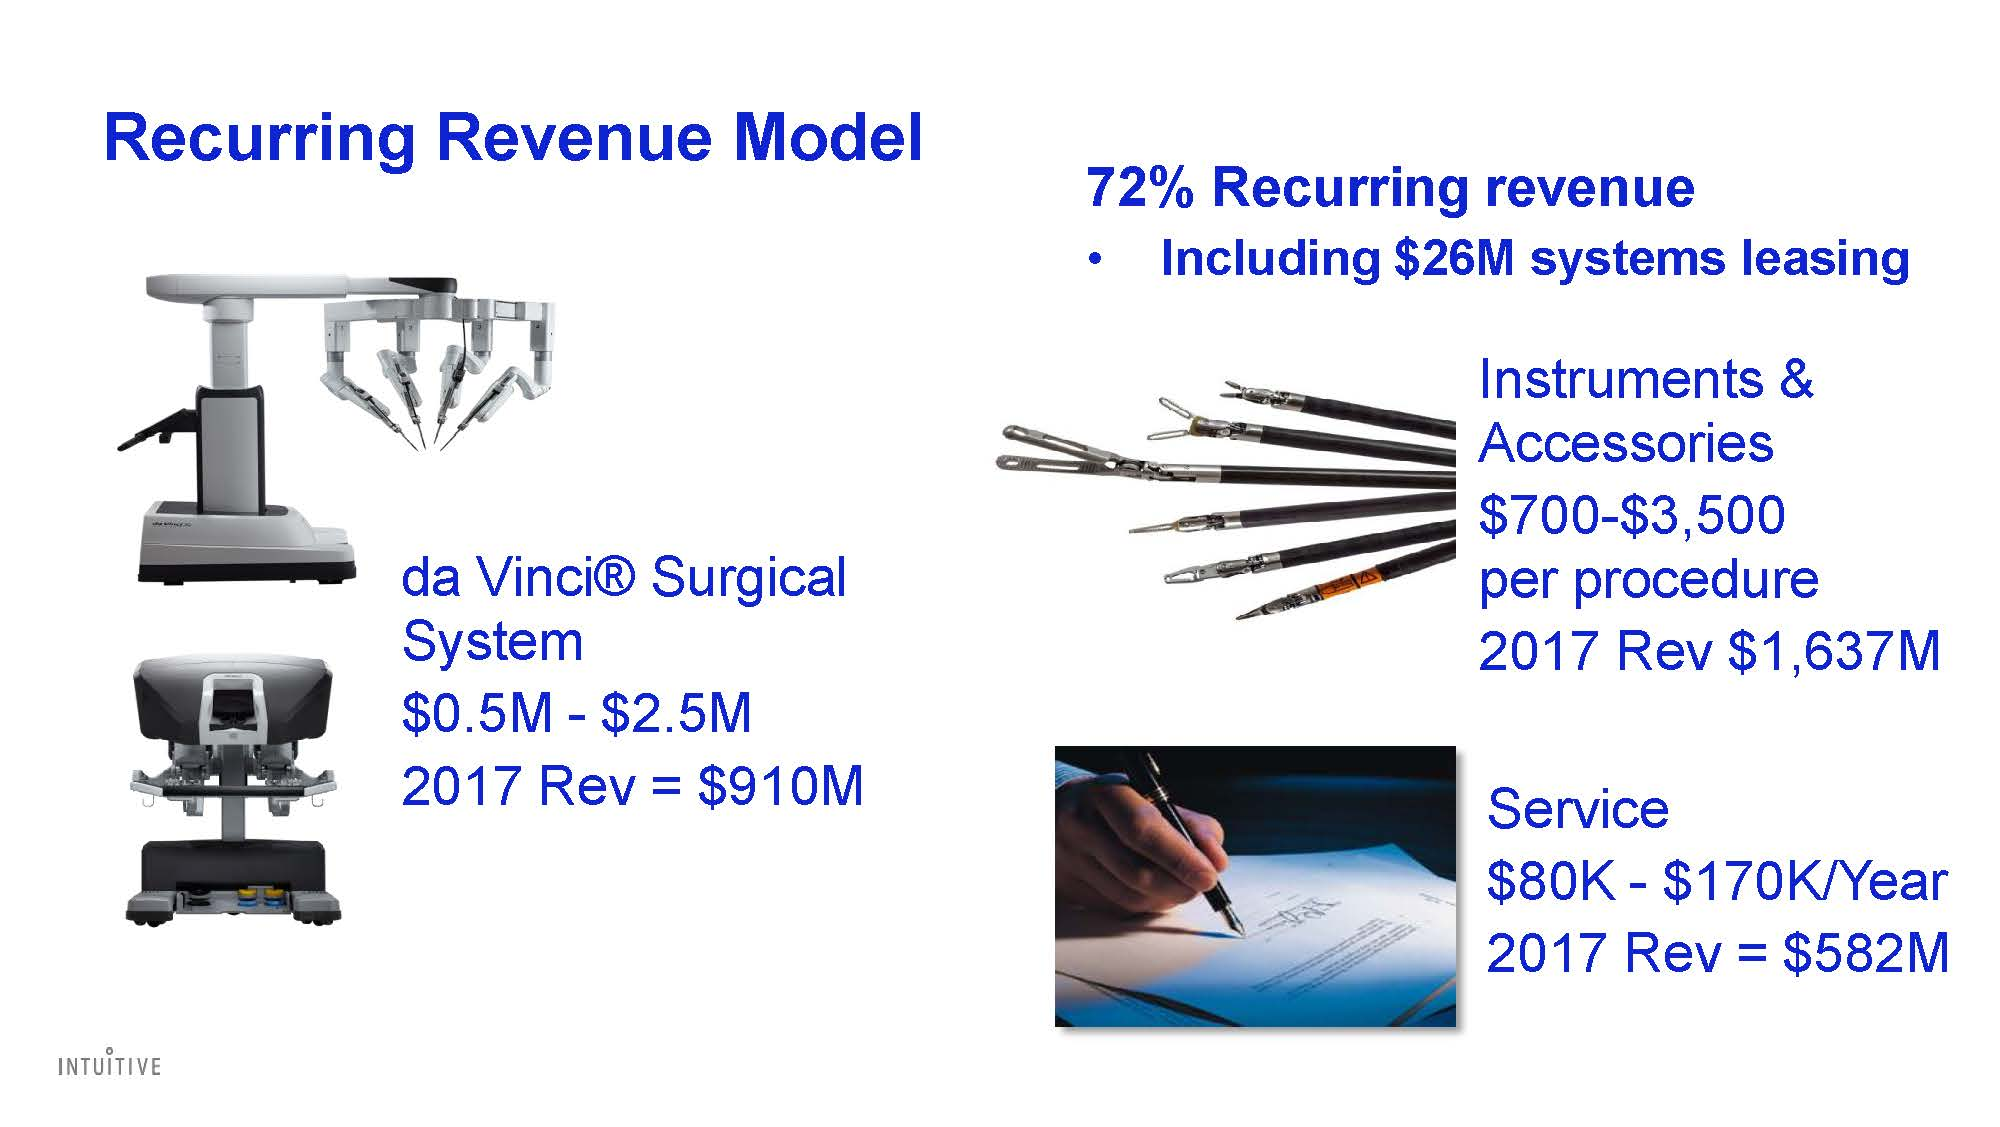 376731845-Intuitive-Surgical-Investor-Presentation-021218_Page_25.jpg